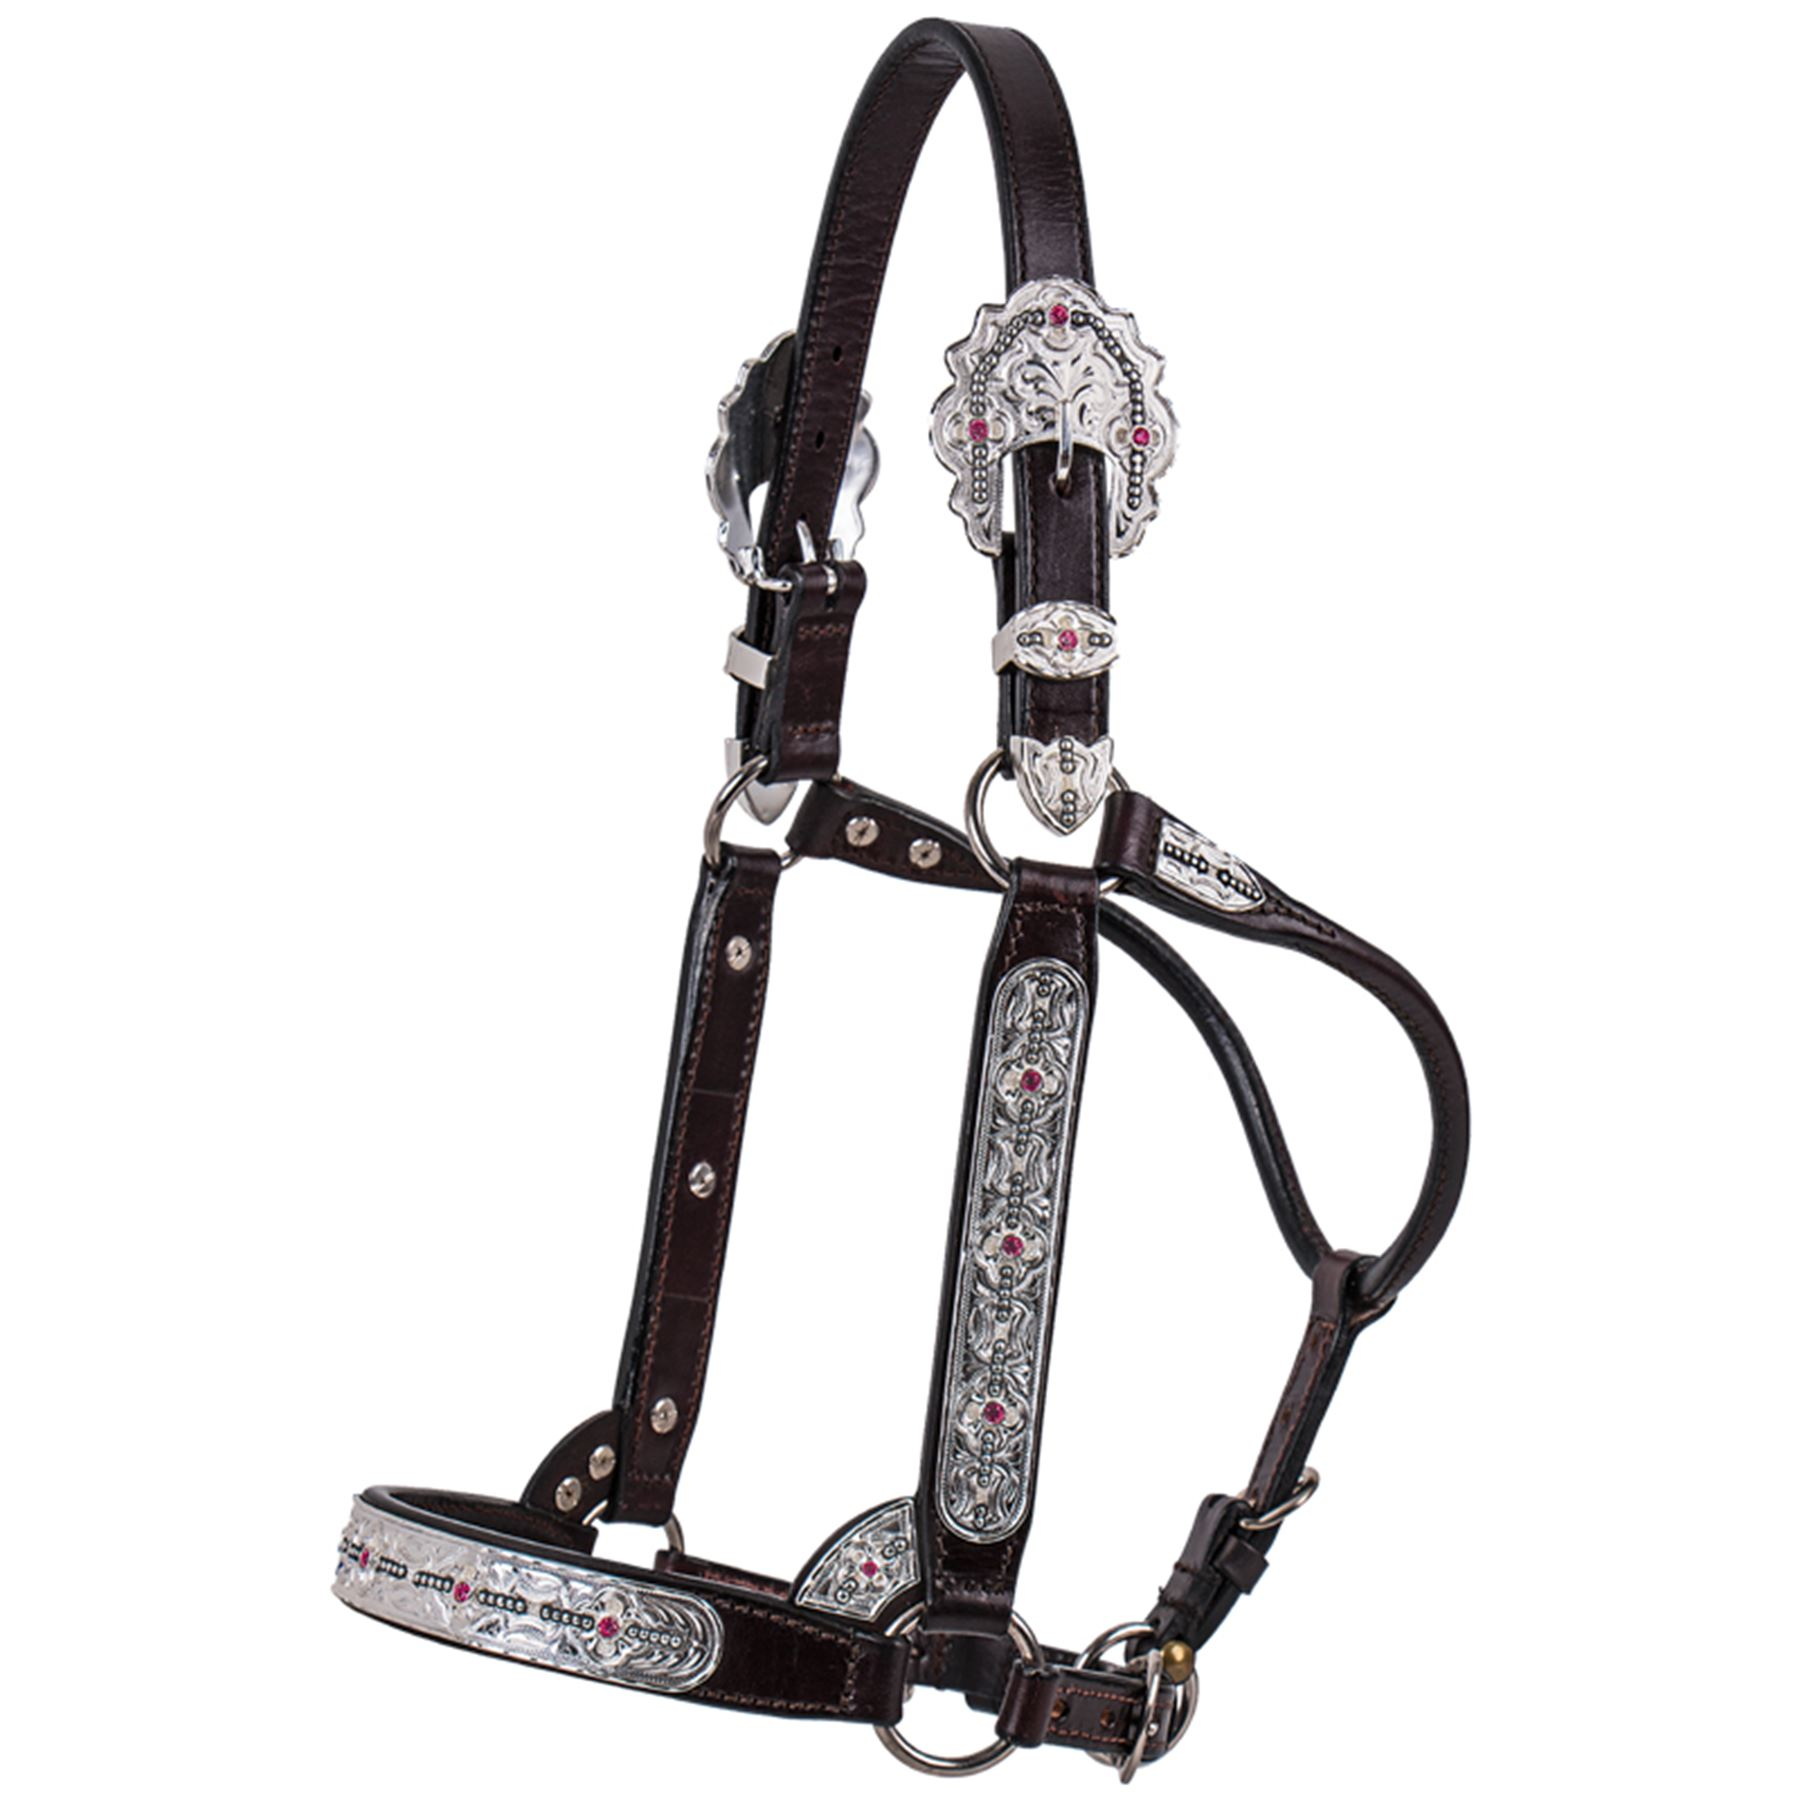 Leather And Silver Western Horse Show Halter With Matching Lead And Chain Halters